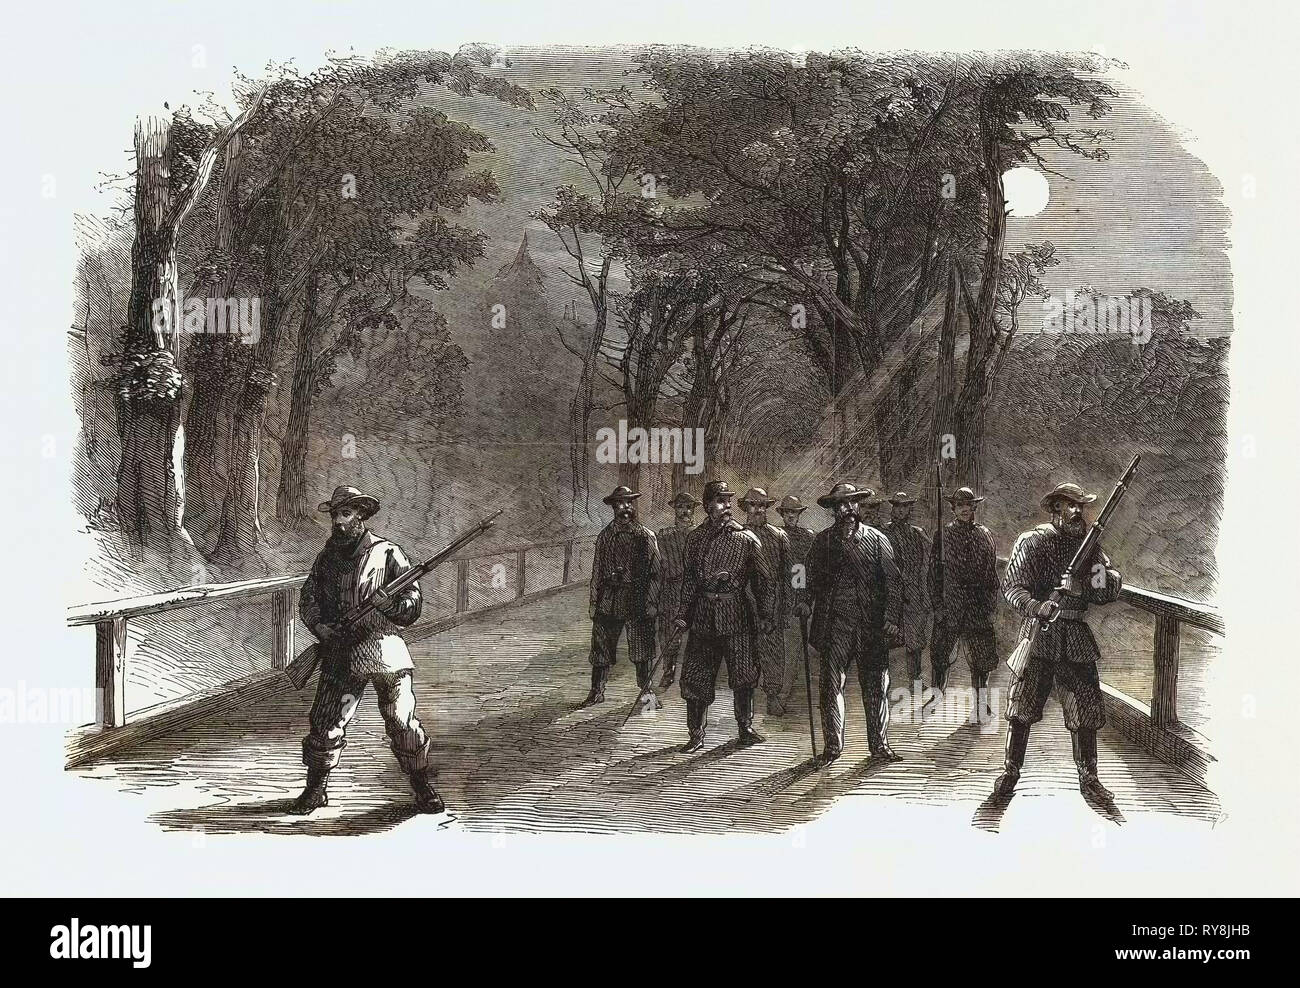 The Civil War in America: Unionist Scouting Party in the Virginian Woods in the Neighbourhood of Alexandria - Stock Image